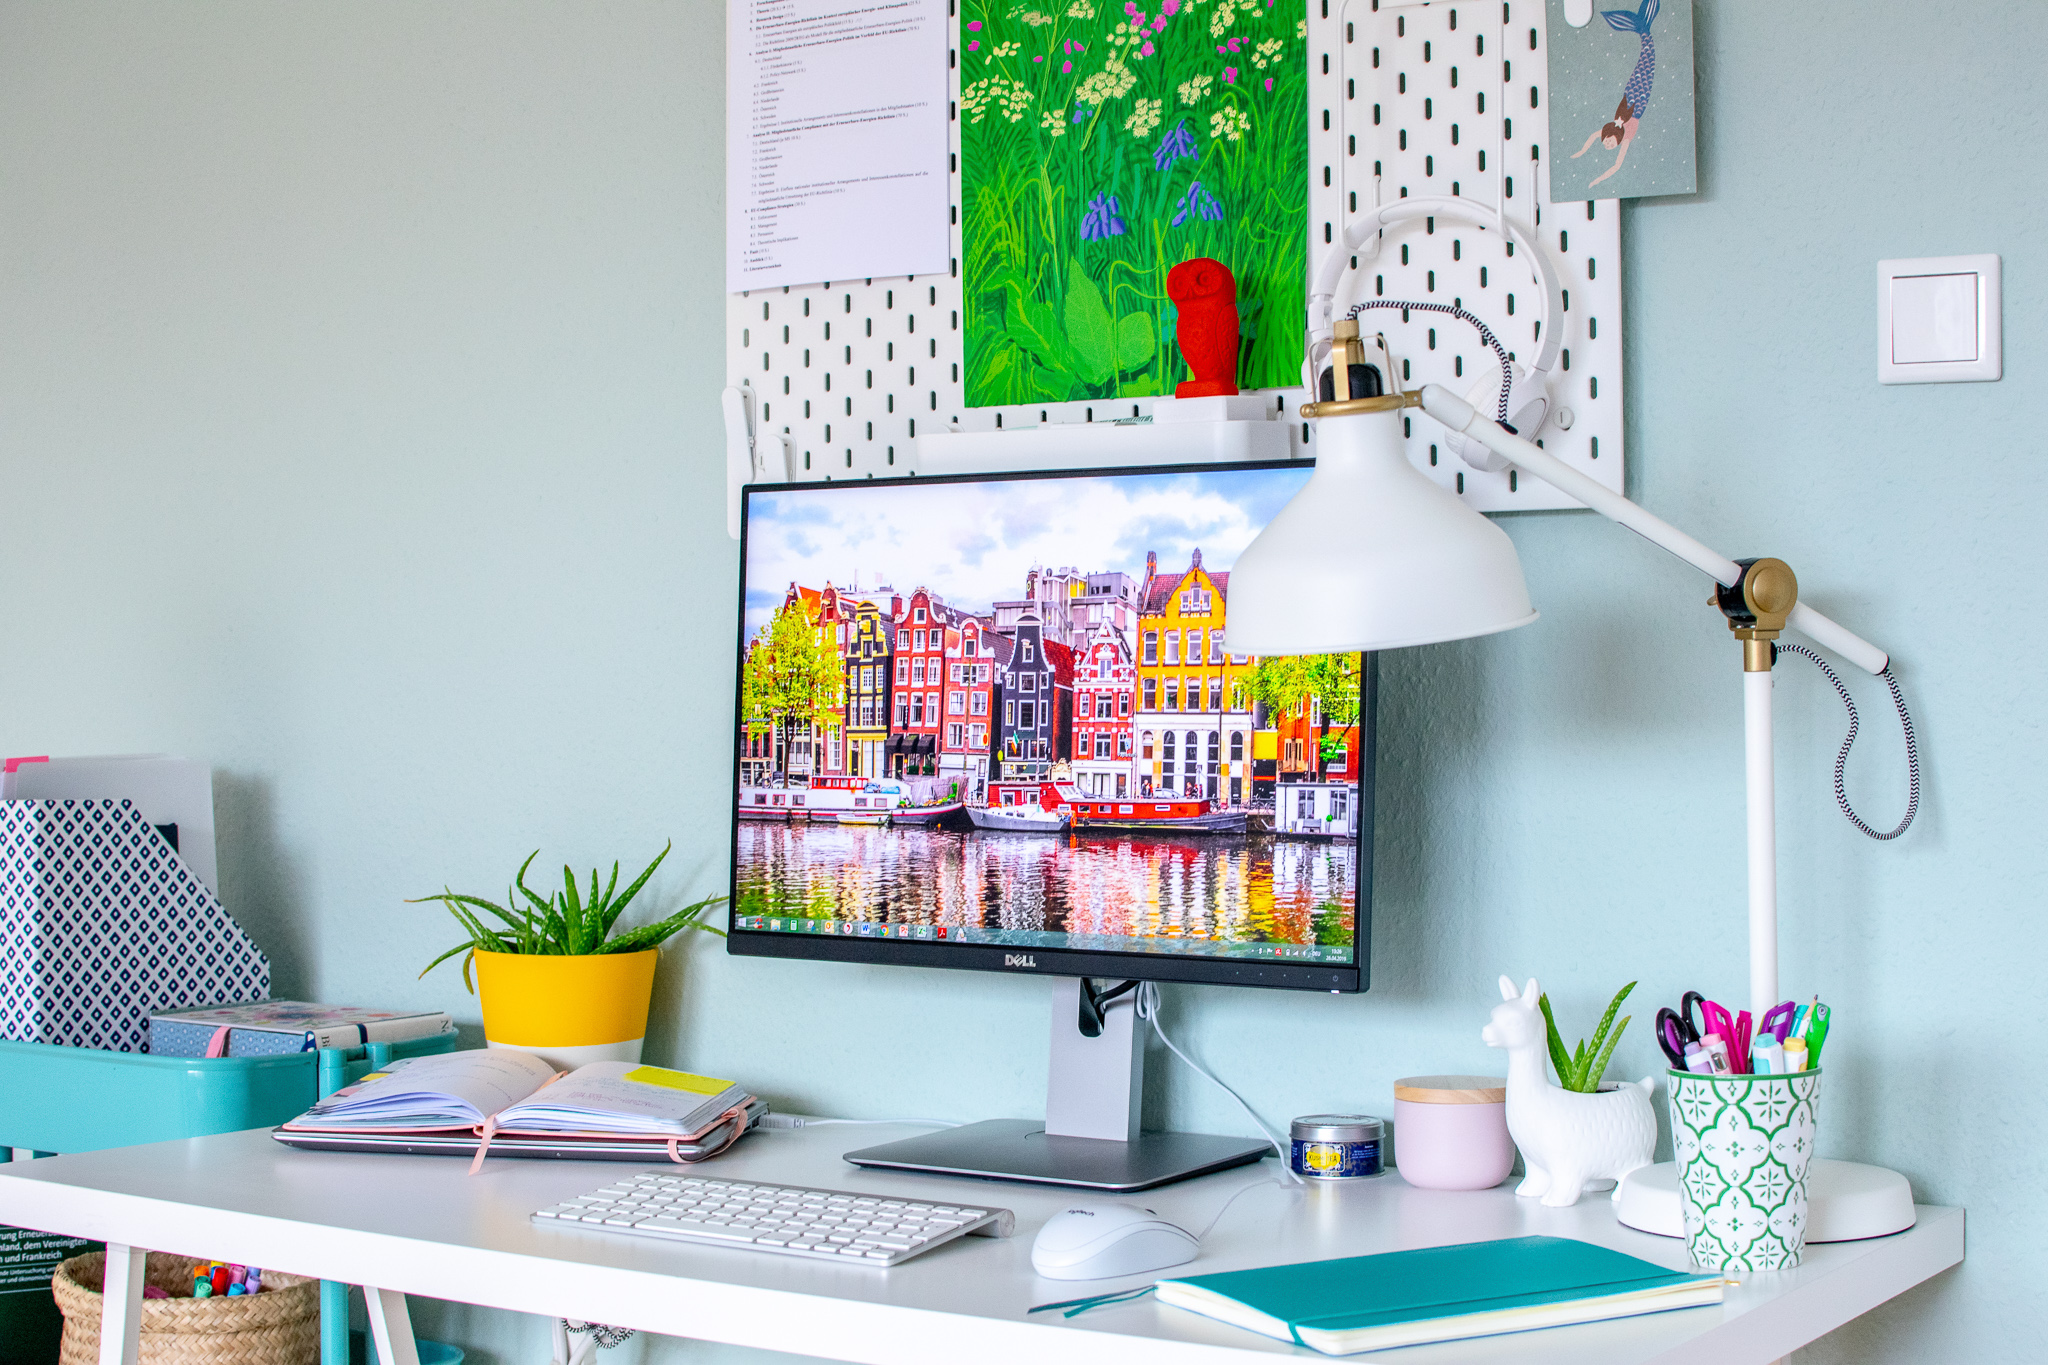 colourful home office setup